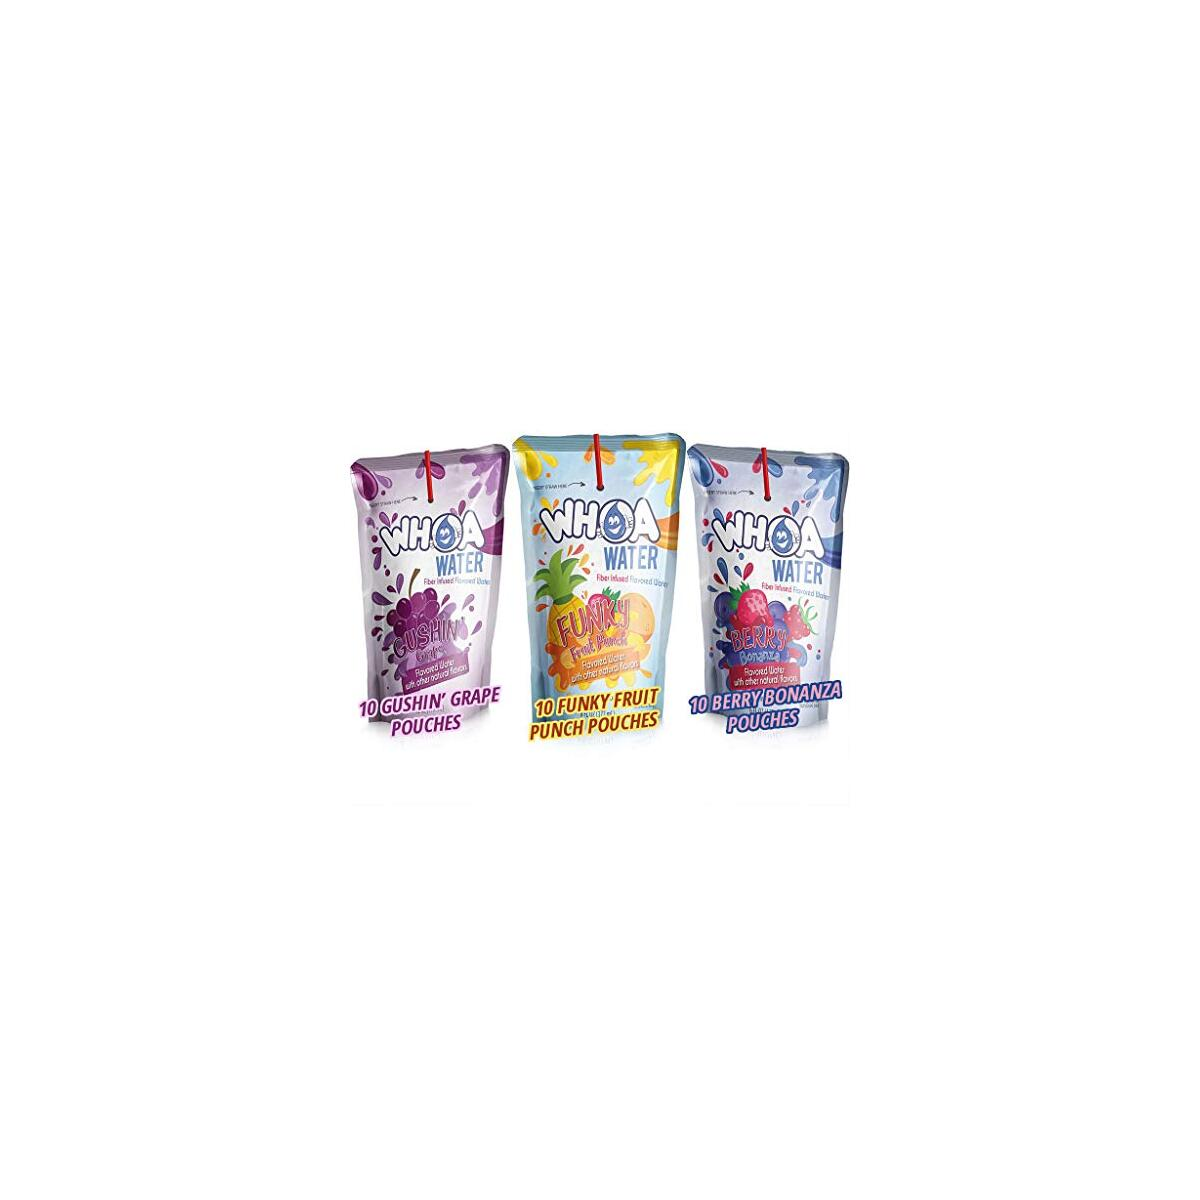 CRAZY 75% TODAY ONLY (limited supply, super yummy)!  WHOA No Sugar Kids Flavored Water (30 Variety Pack) - 10 'Easy to Use' Pouches of Gushin Grape, Fruit Punch, Berry Bonanza that Kids Love, Fiber Infused, Zero Artificial Sweeteners, Gluten Free, Vegan